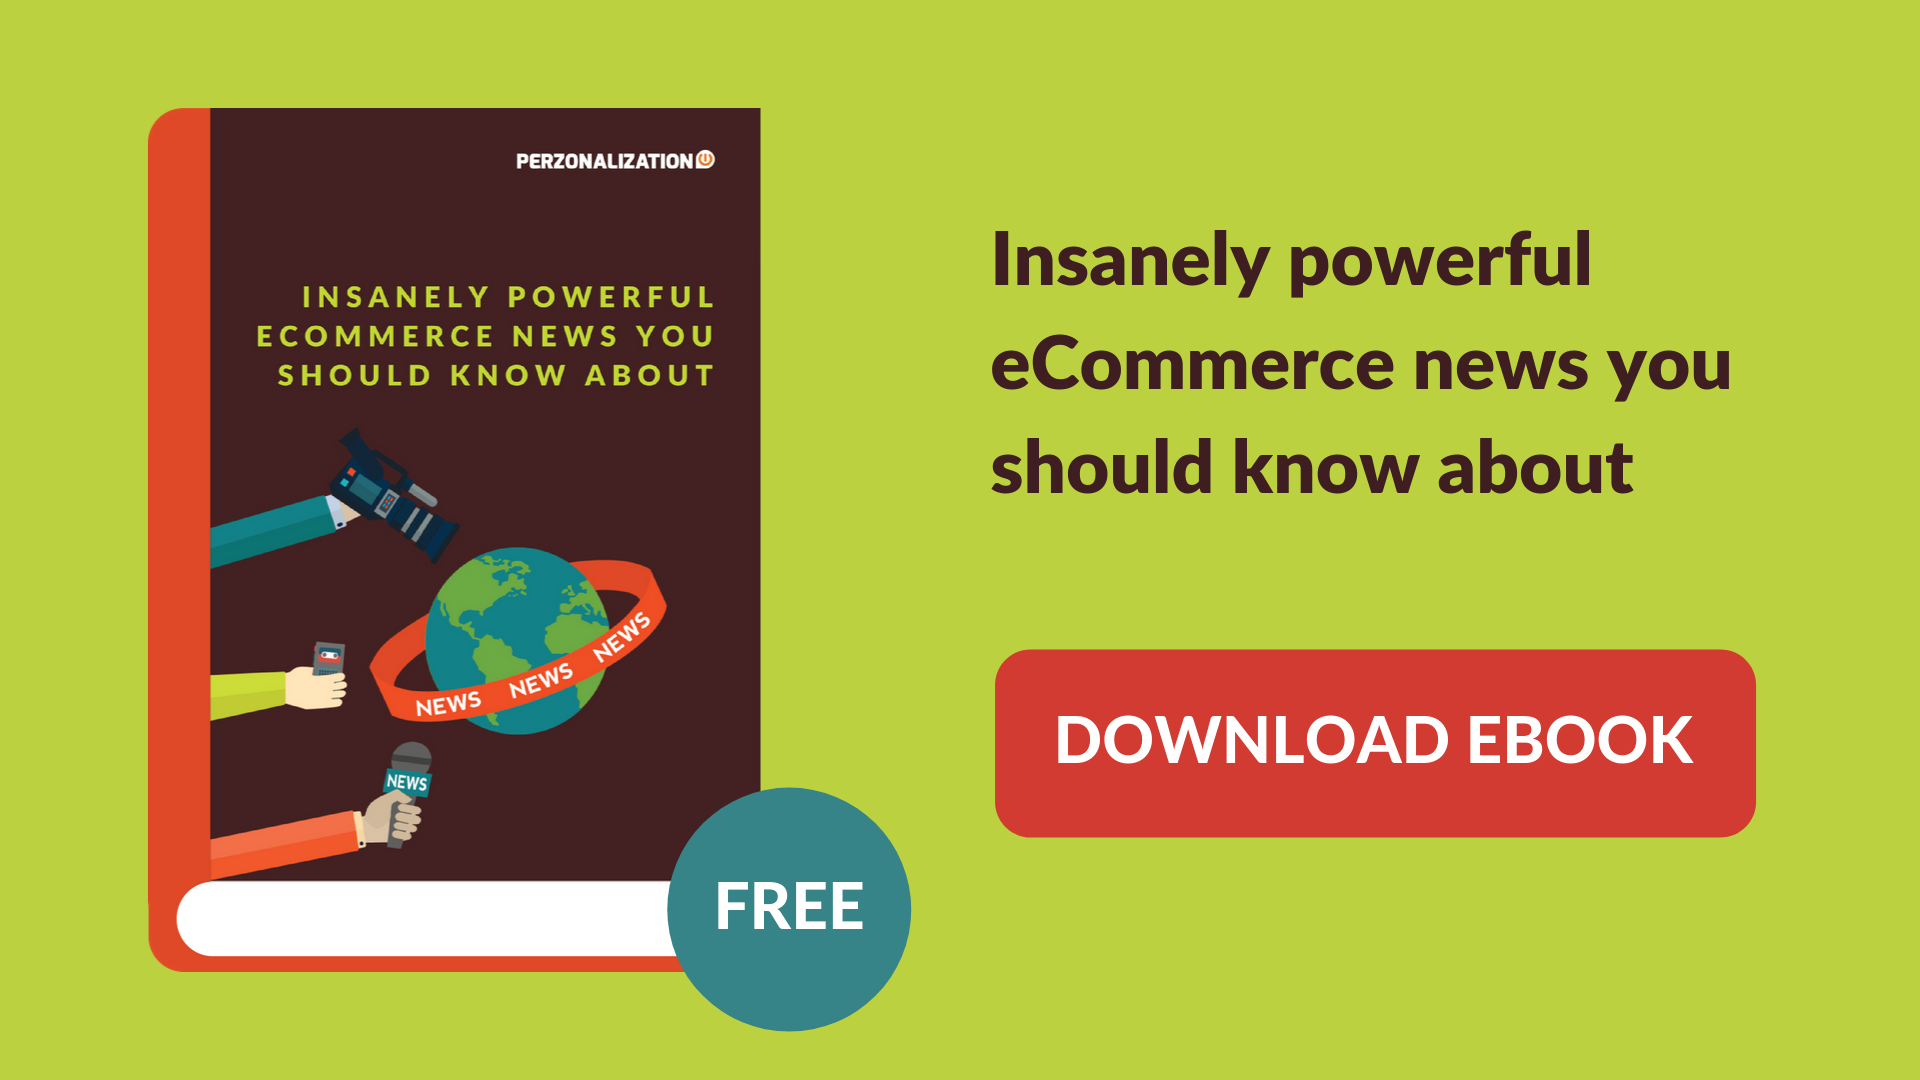 Download free ebook: eCommerce news